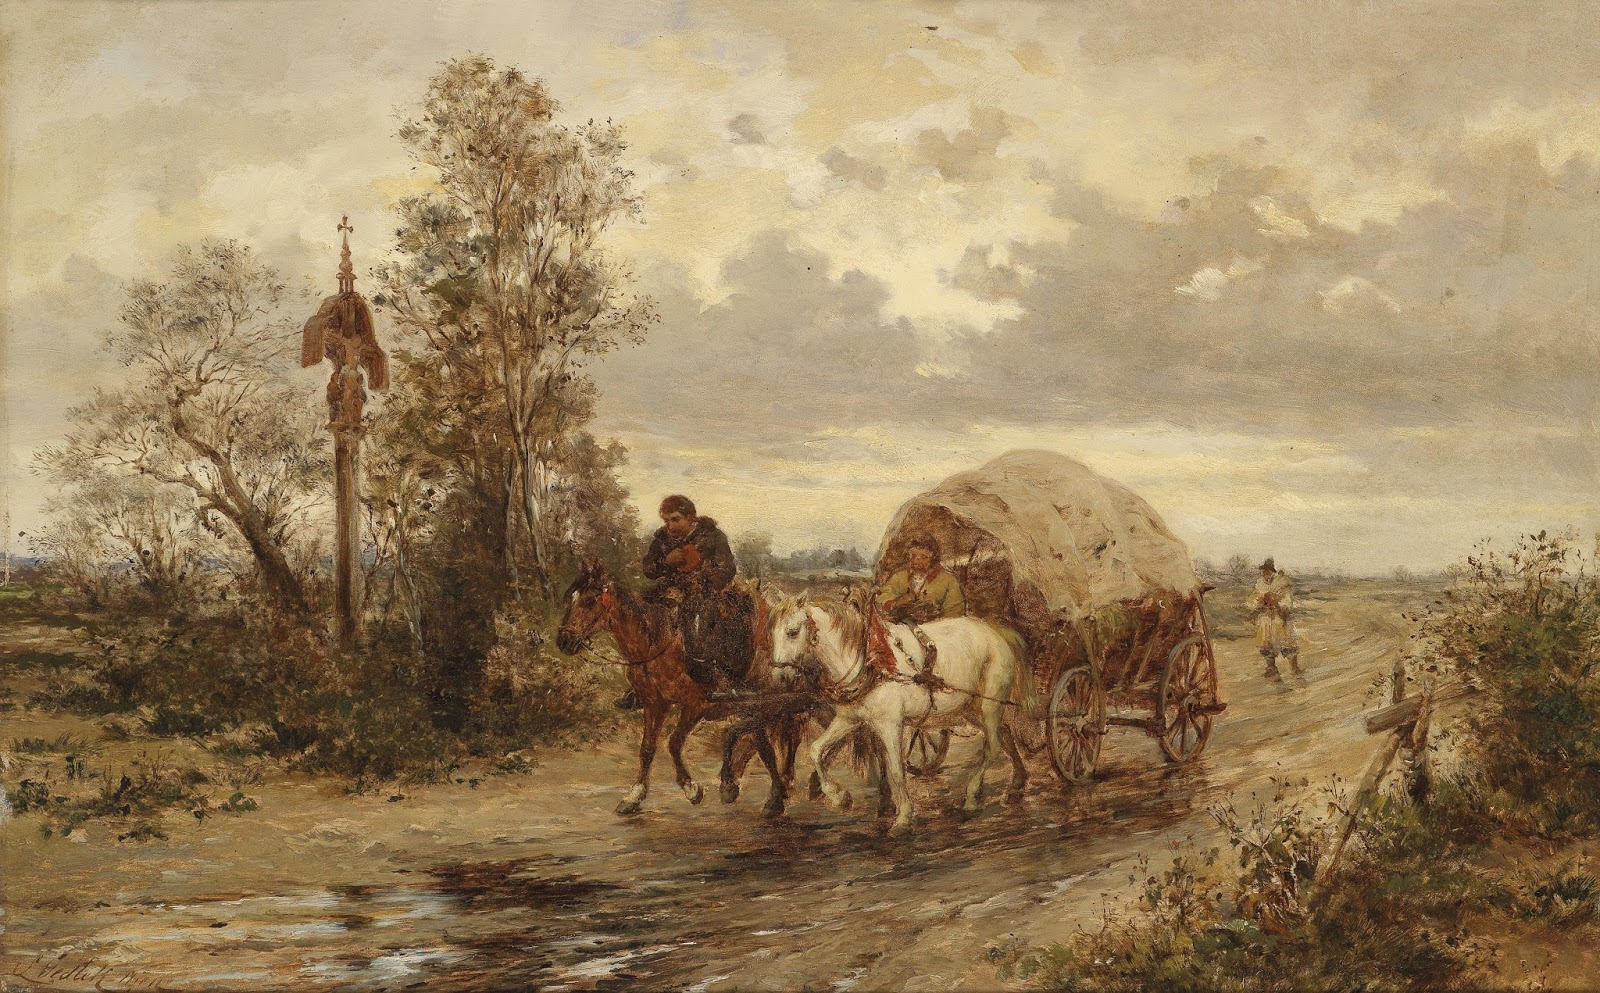 1 Ludwig_Gedlek_Auf_der_Landstraße  On the country road.jpg